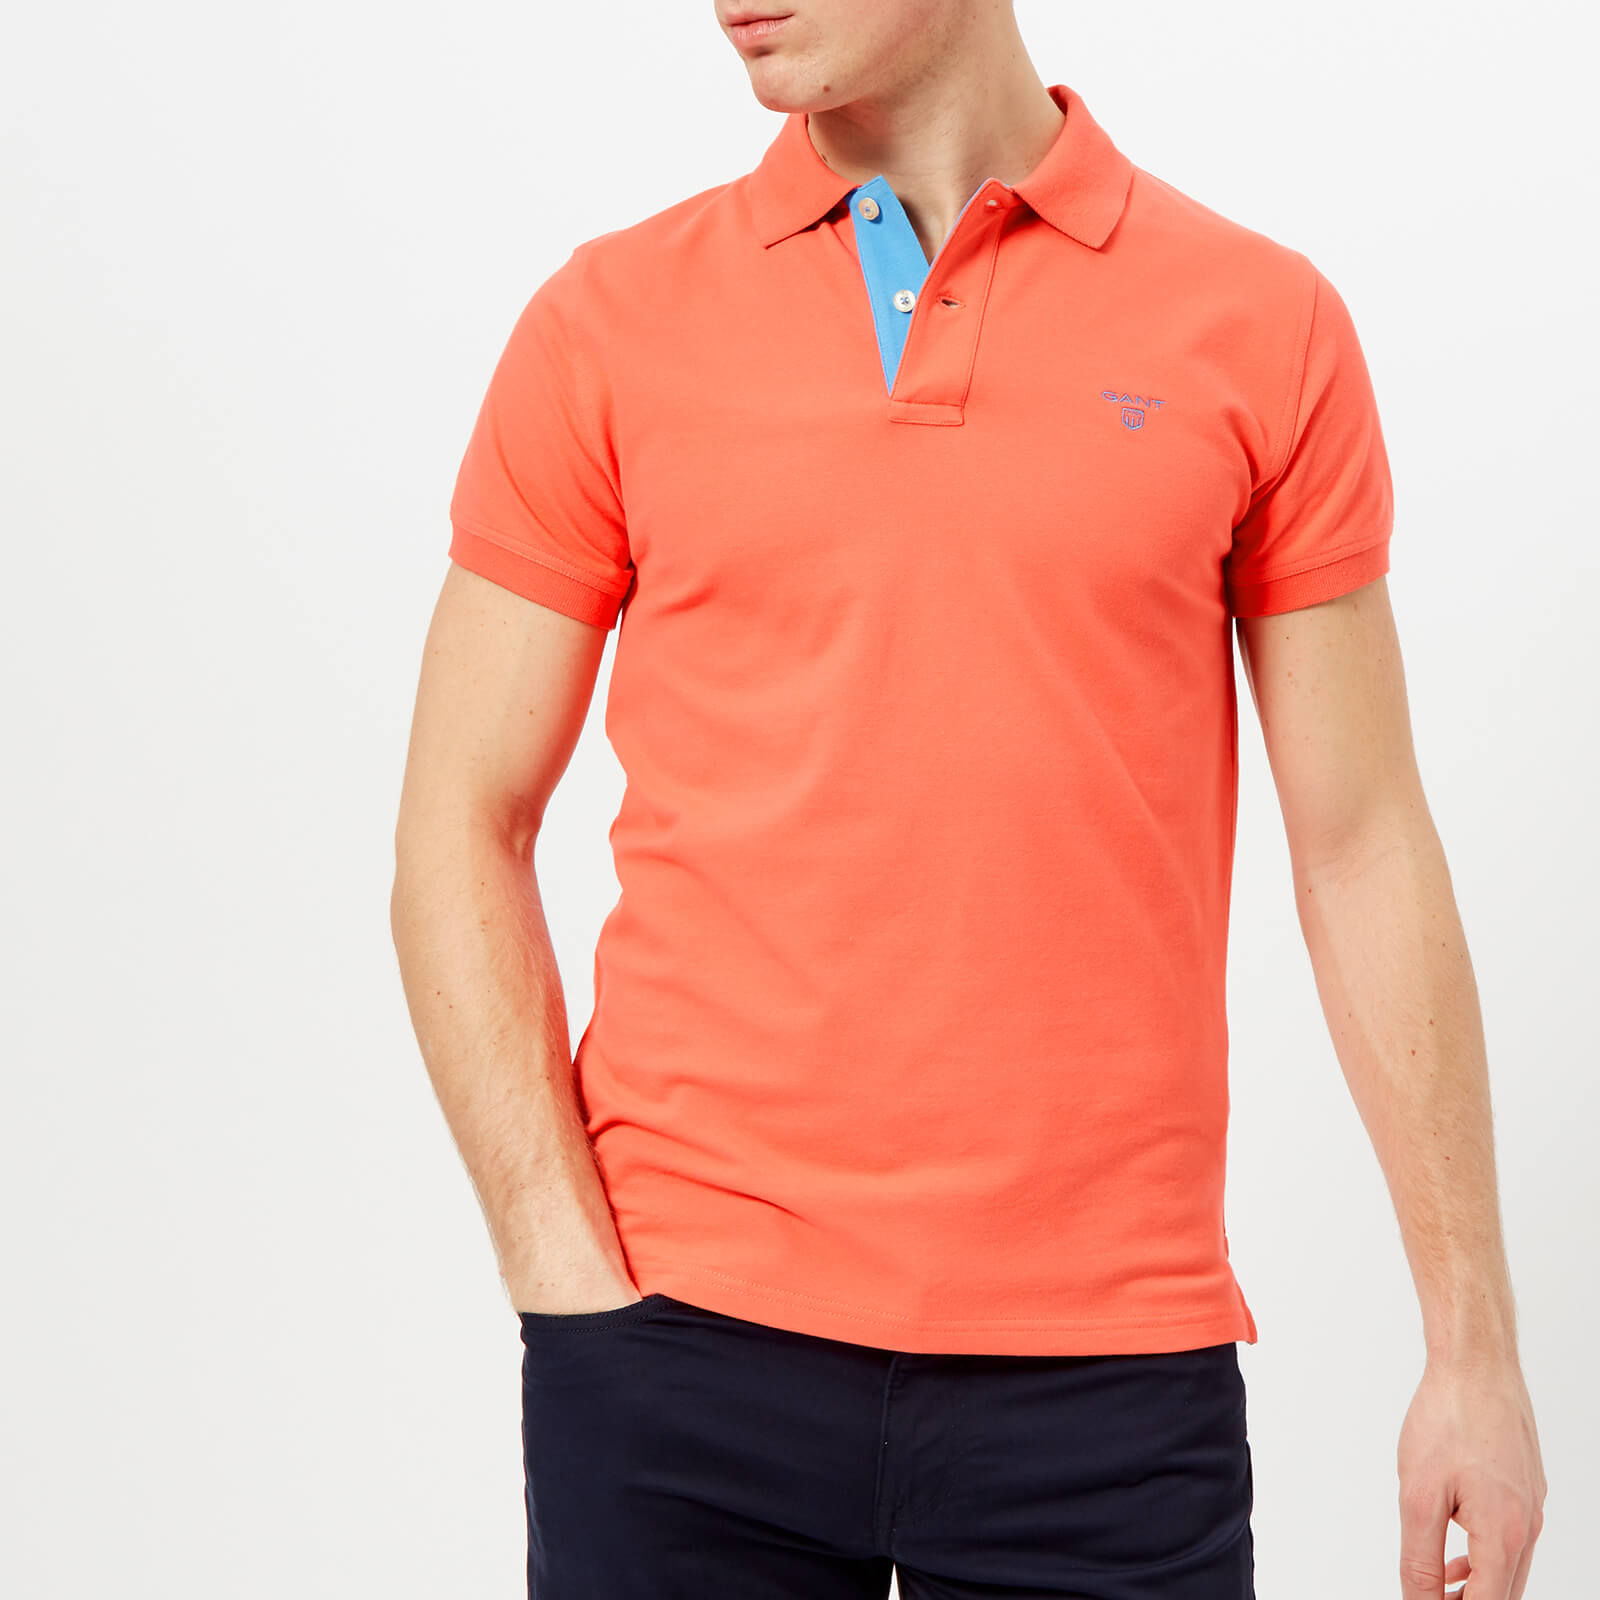 6571683620e GANT Men s Contrast Collar Polo Shirt - Strong Coral Clothing ...